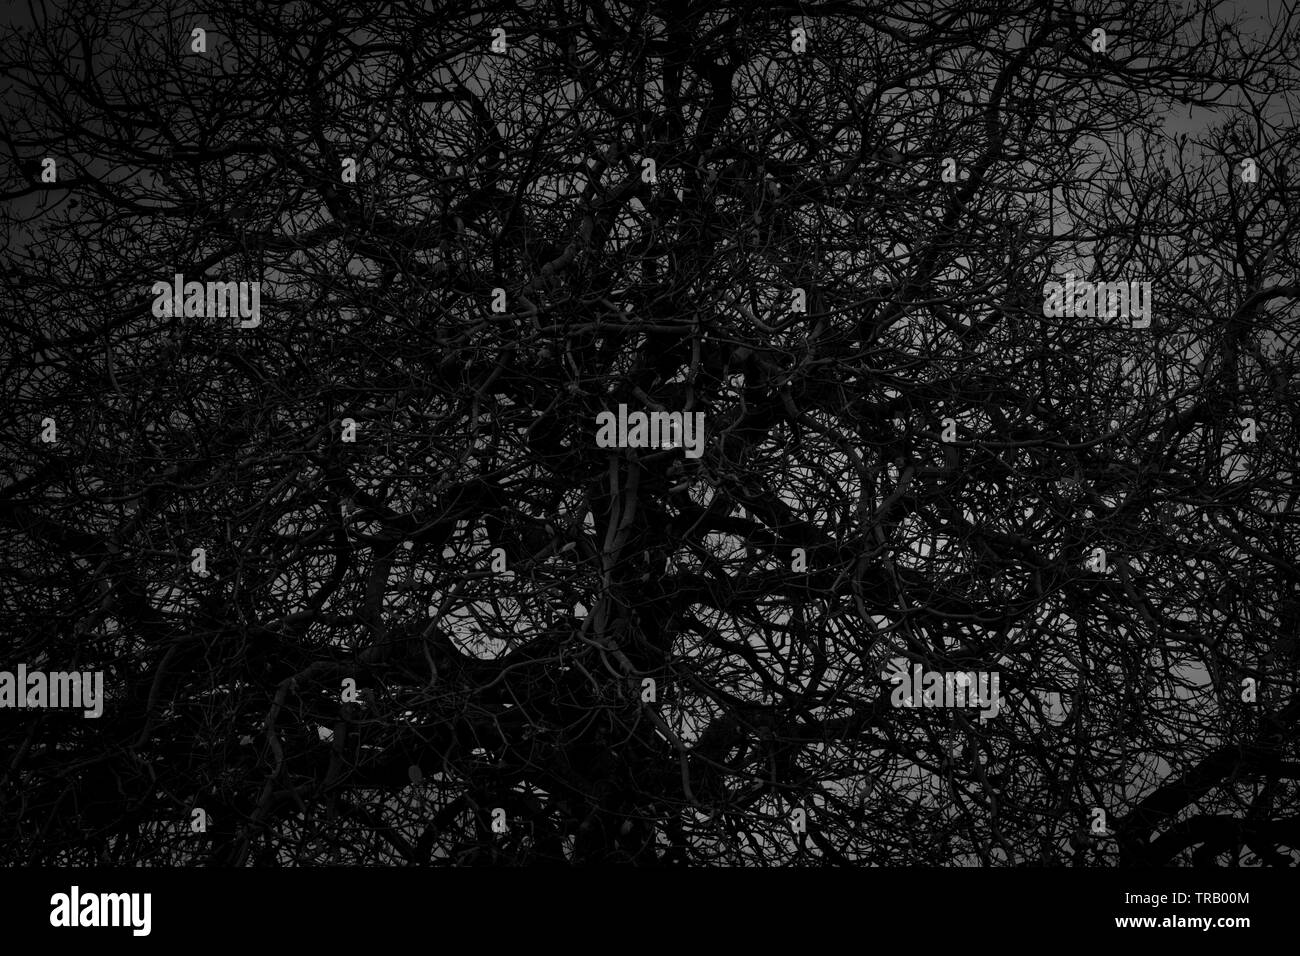 Dead tree and branch on white background. Black branches of tree. Disorganized tree branches. Tangled of life concept. Crazy pattern. Intertwined - Stock Image